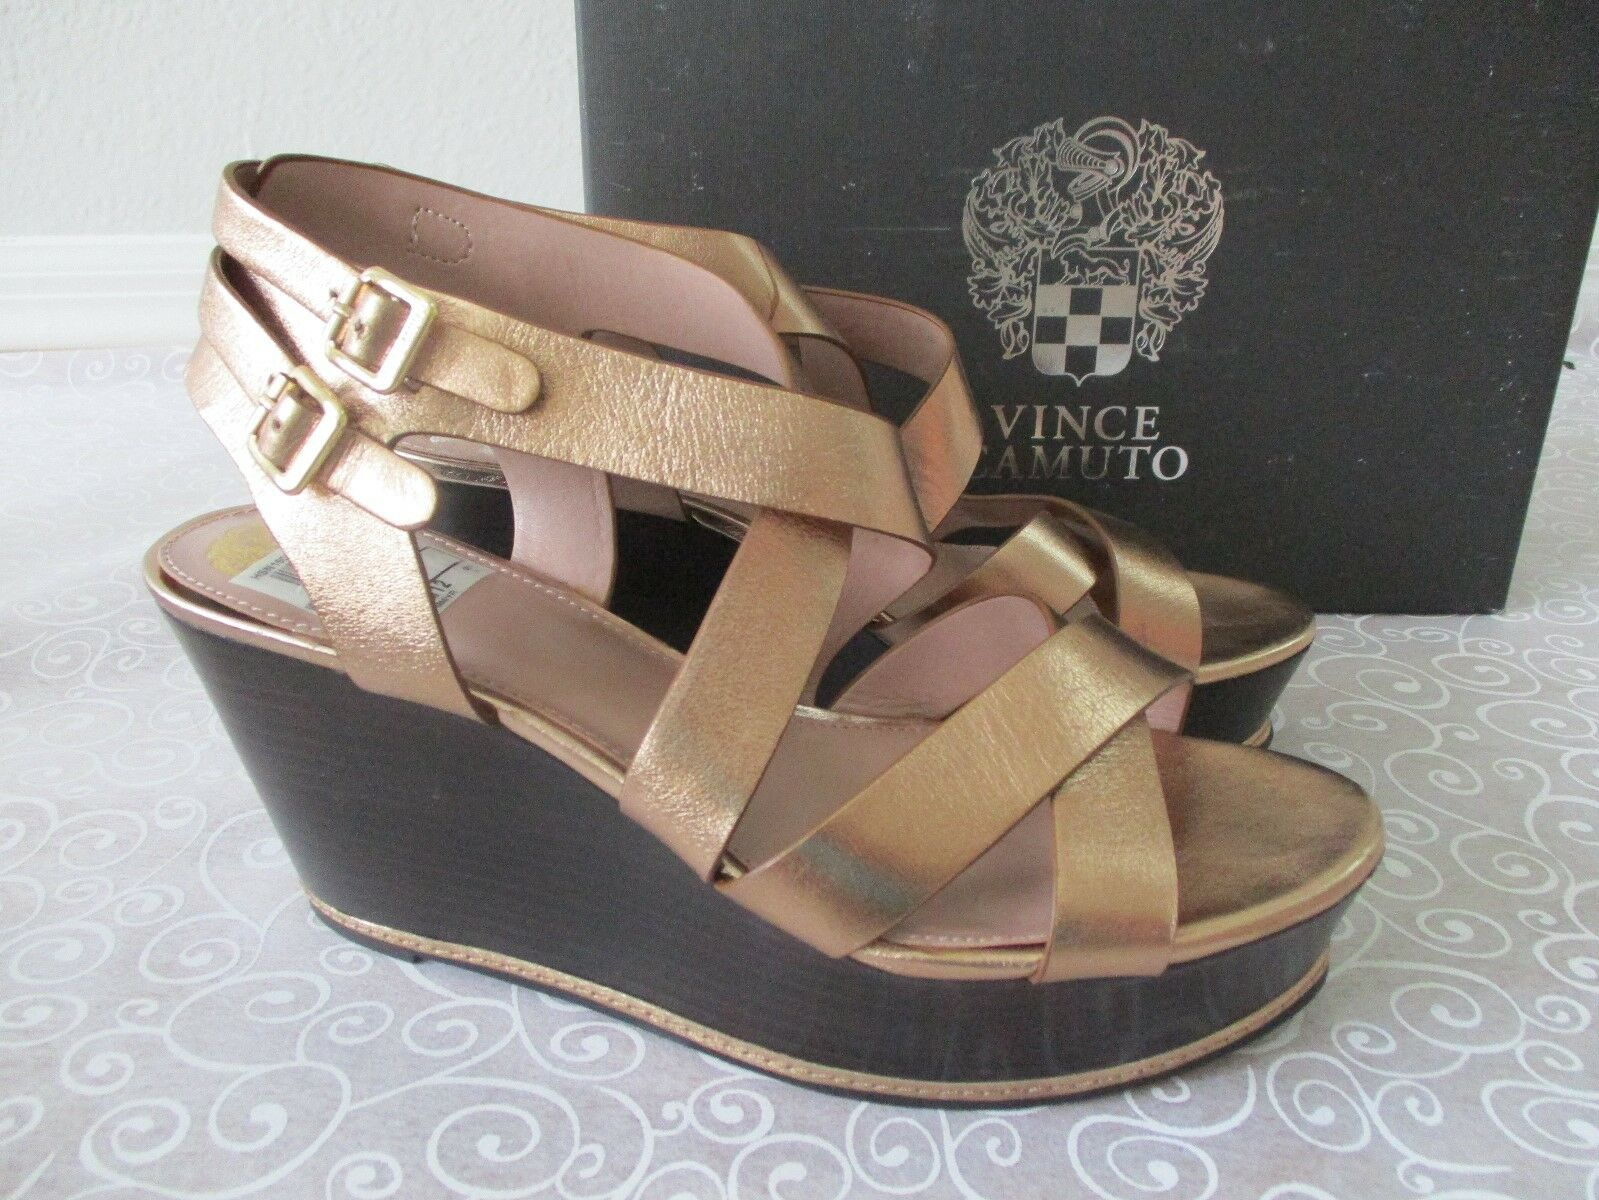 99 VINCE CAMUTO METALLIC BRONZE STRAPPY WEDGE LEATHER SHOES SIZE 9 1/2 M NEW